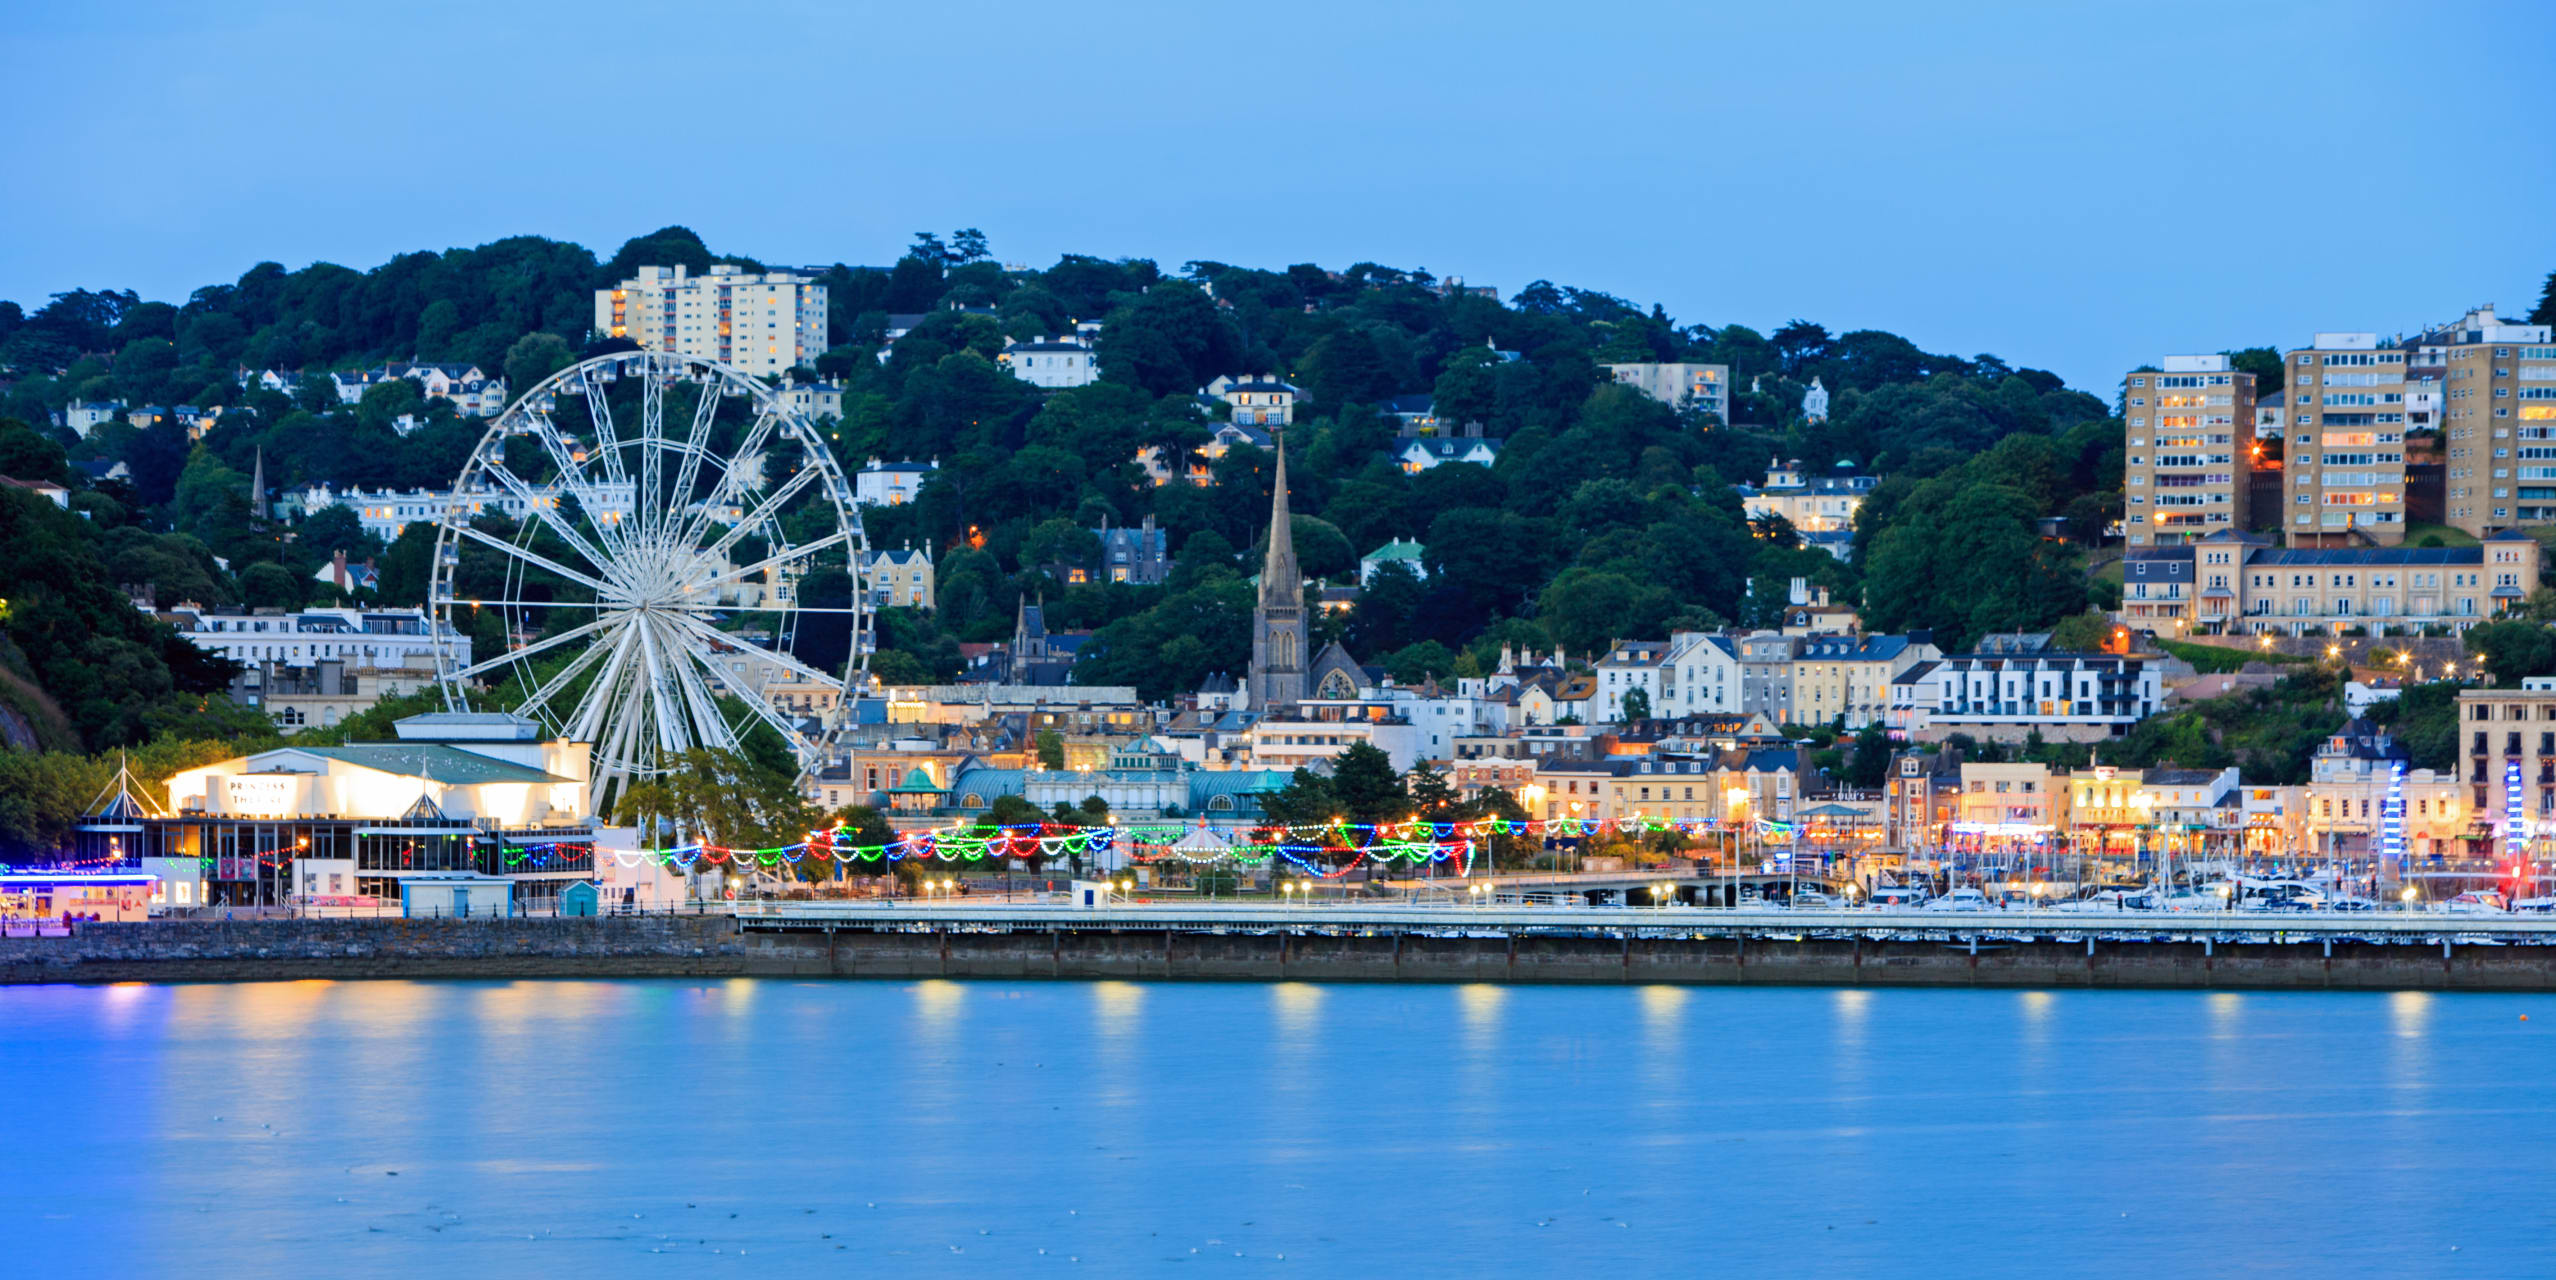 Devon - Torquay: the Queen of Crime and the English Riviera (Silent Tour)